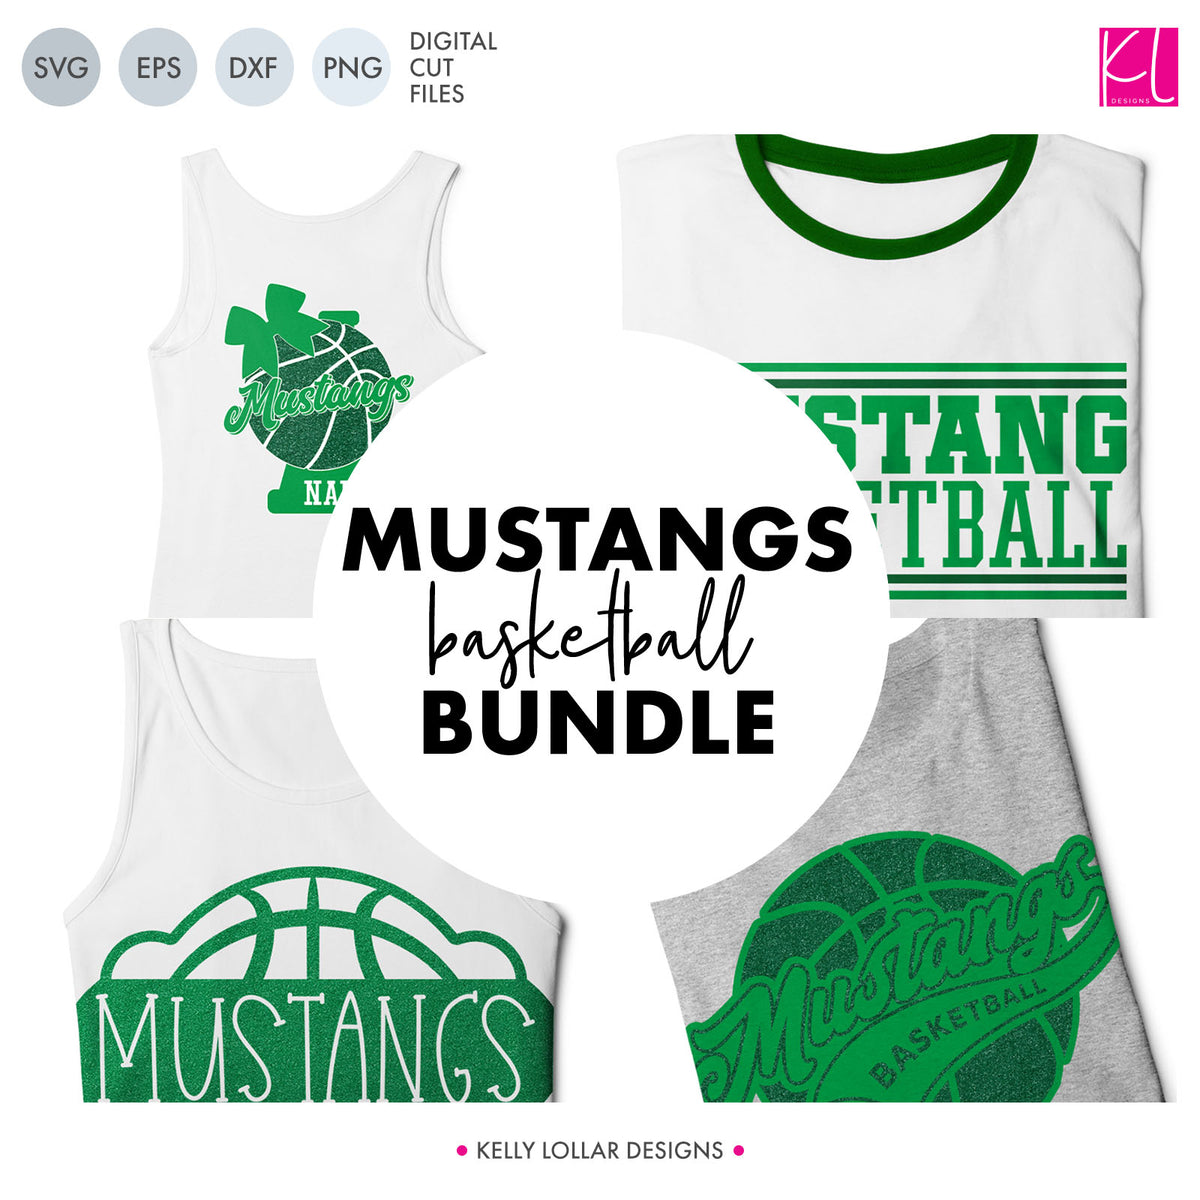 Mustangs Basketball Bundle | SVG DXF EPS PNG Cut Files